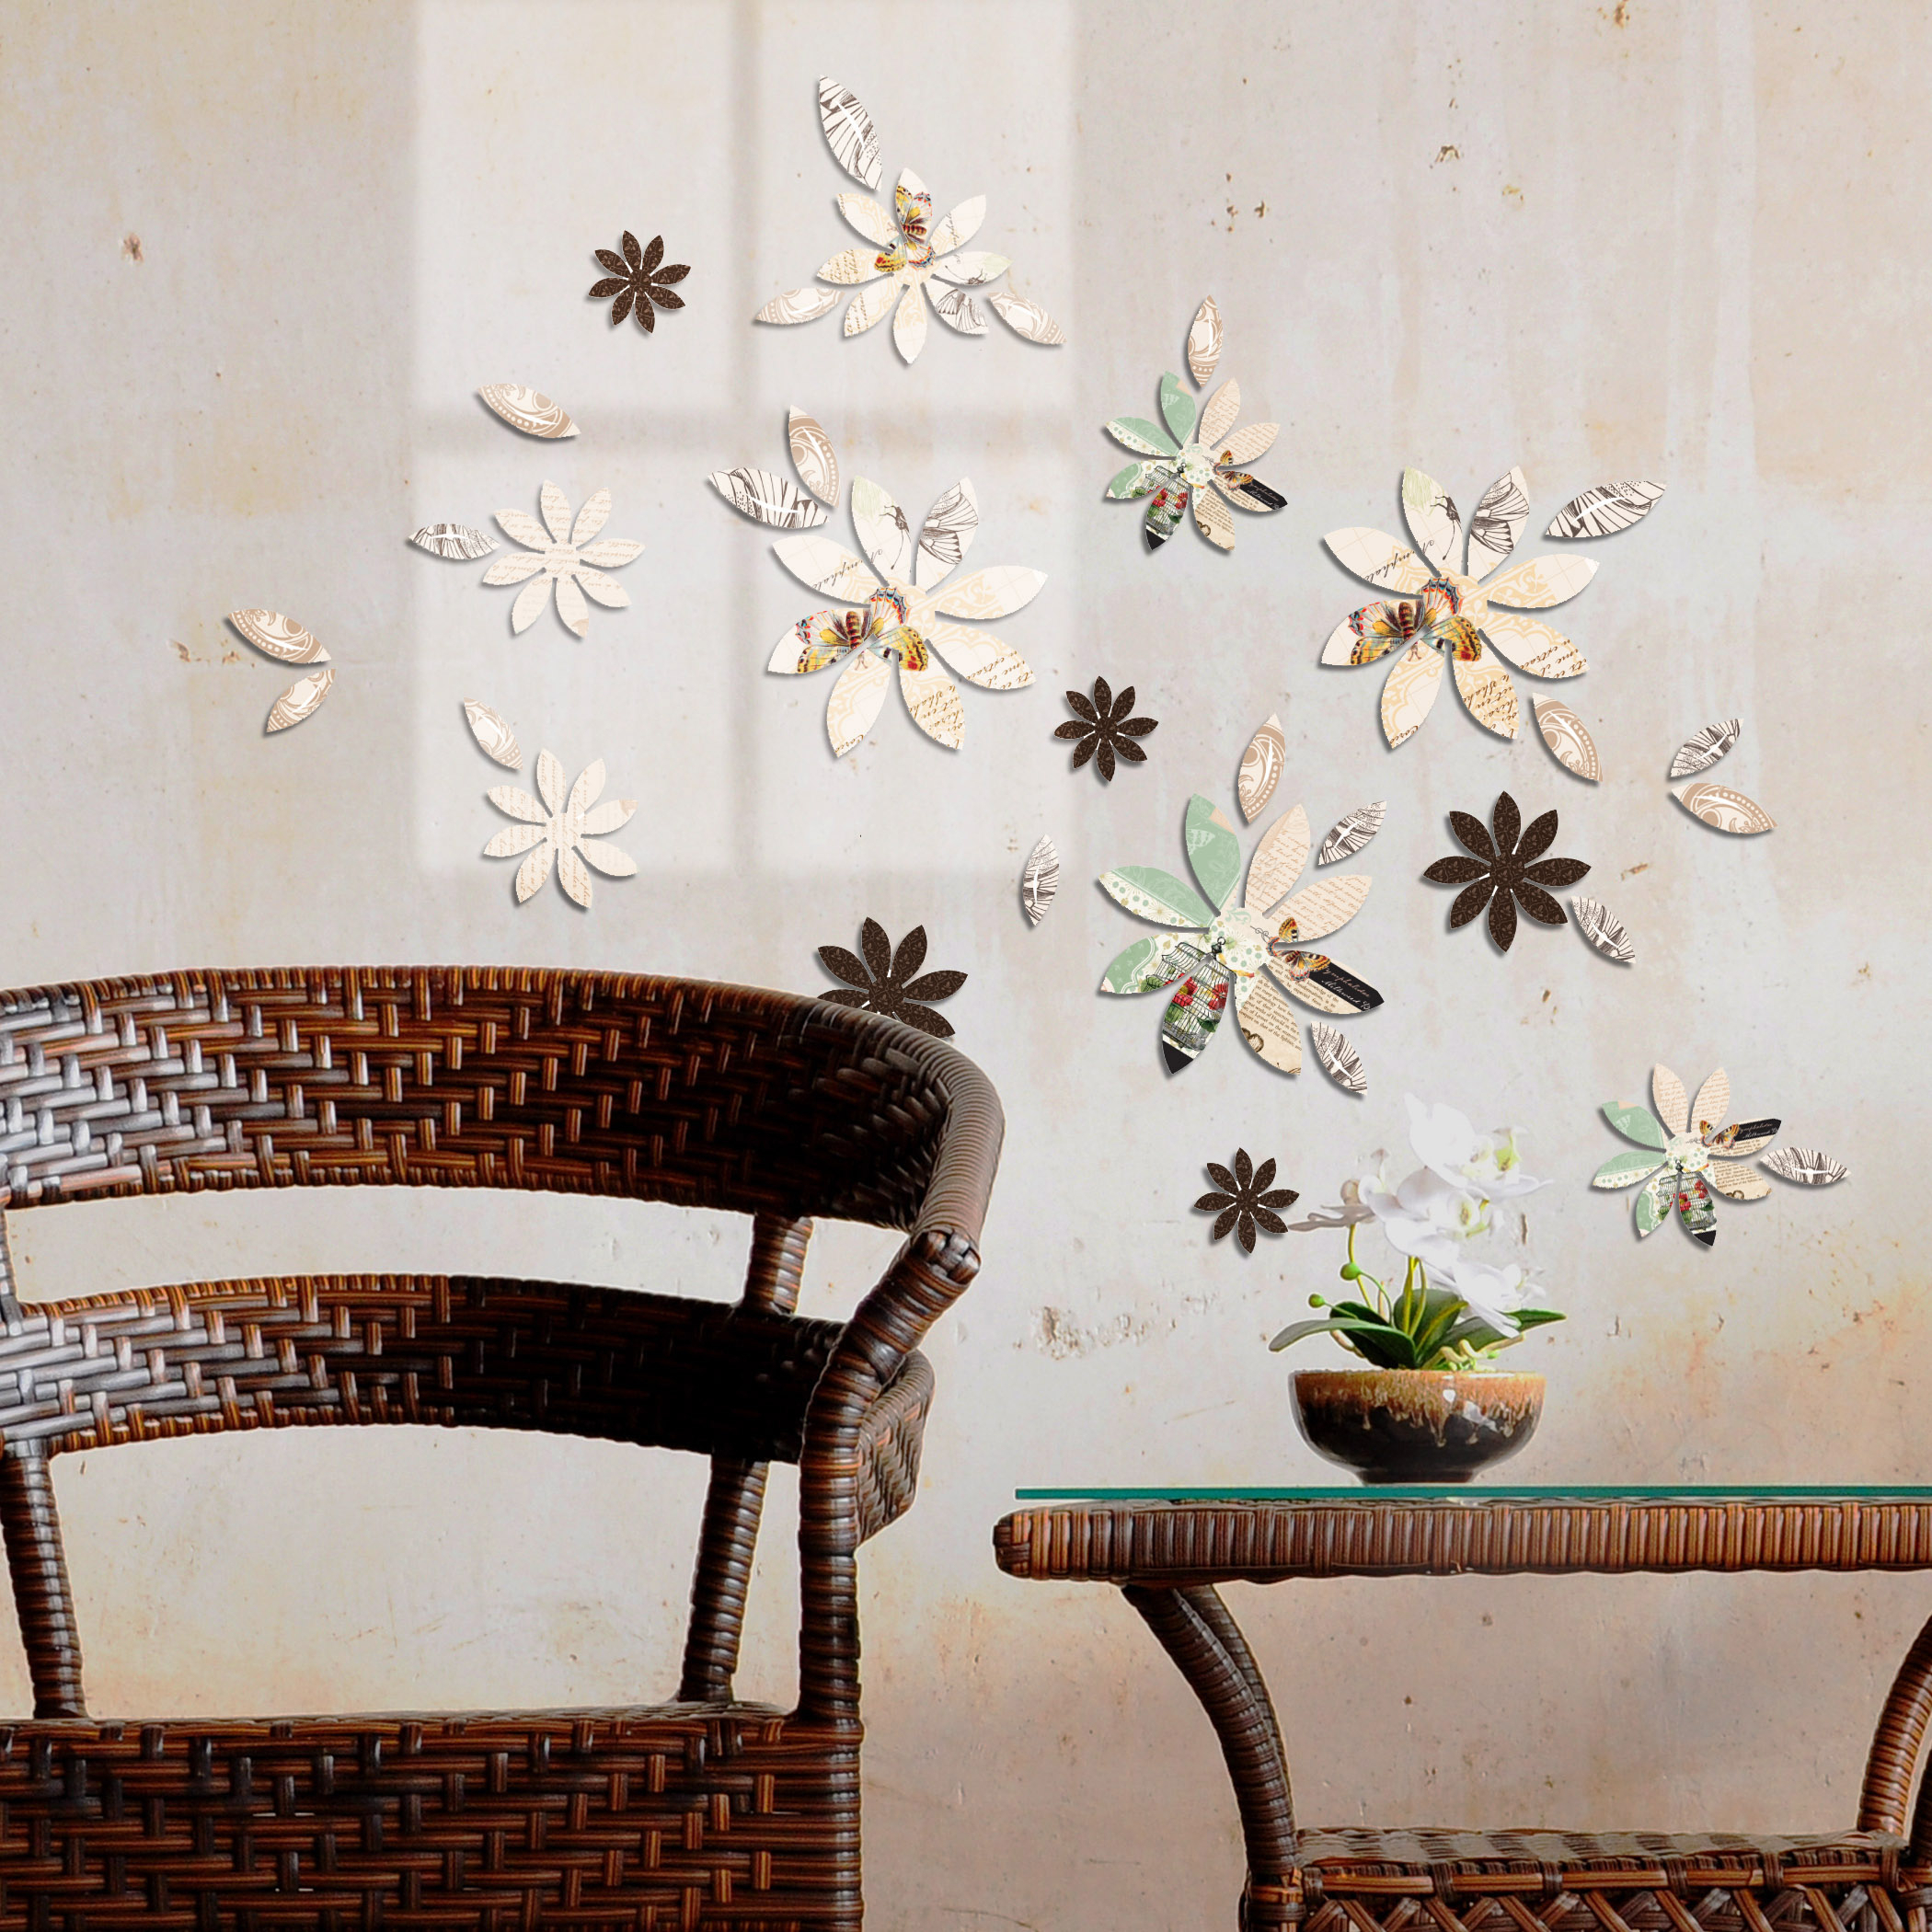 3D Wall Decor Brown Flowers With Mariposa Print, 9 Piece With Regard To Mariposa 9 Piece Wall Decor (View 5 of 30)